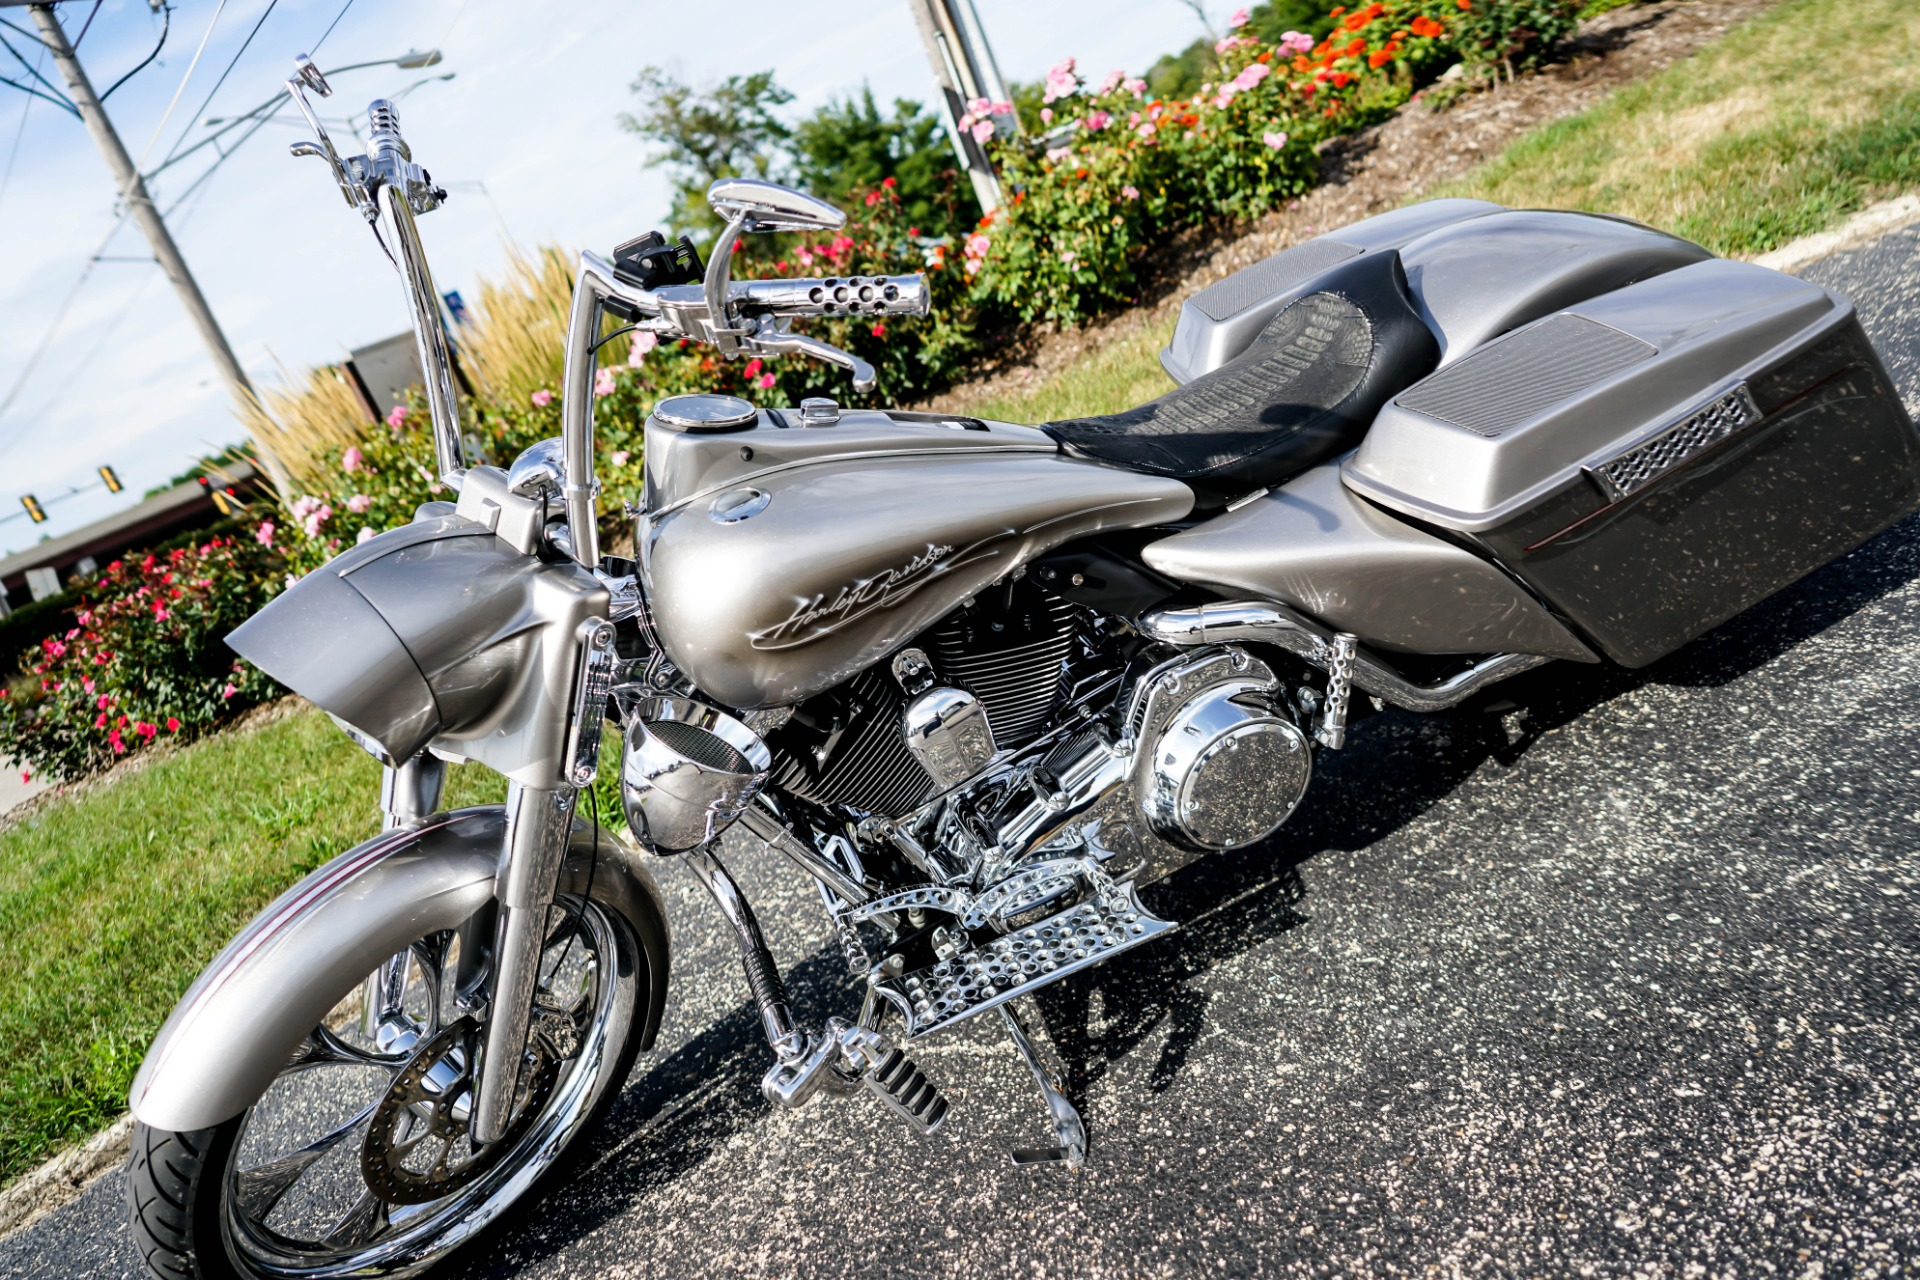 Used 2008 Harley Davidson Road King Full Custom Bagger | Mundelein, IL